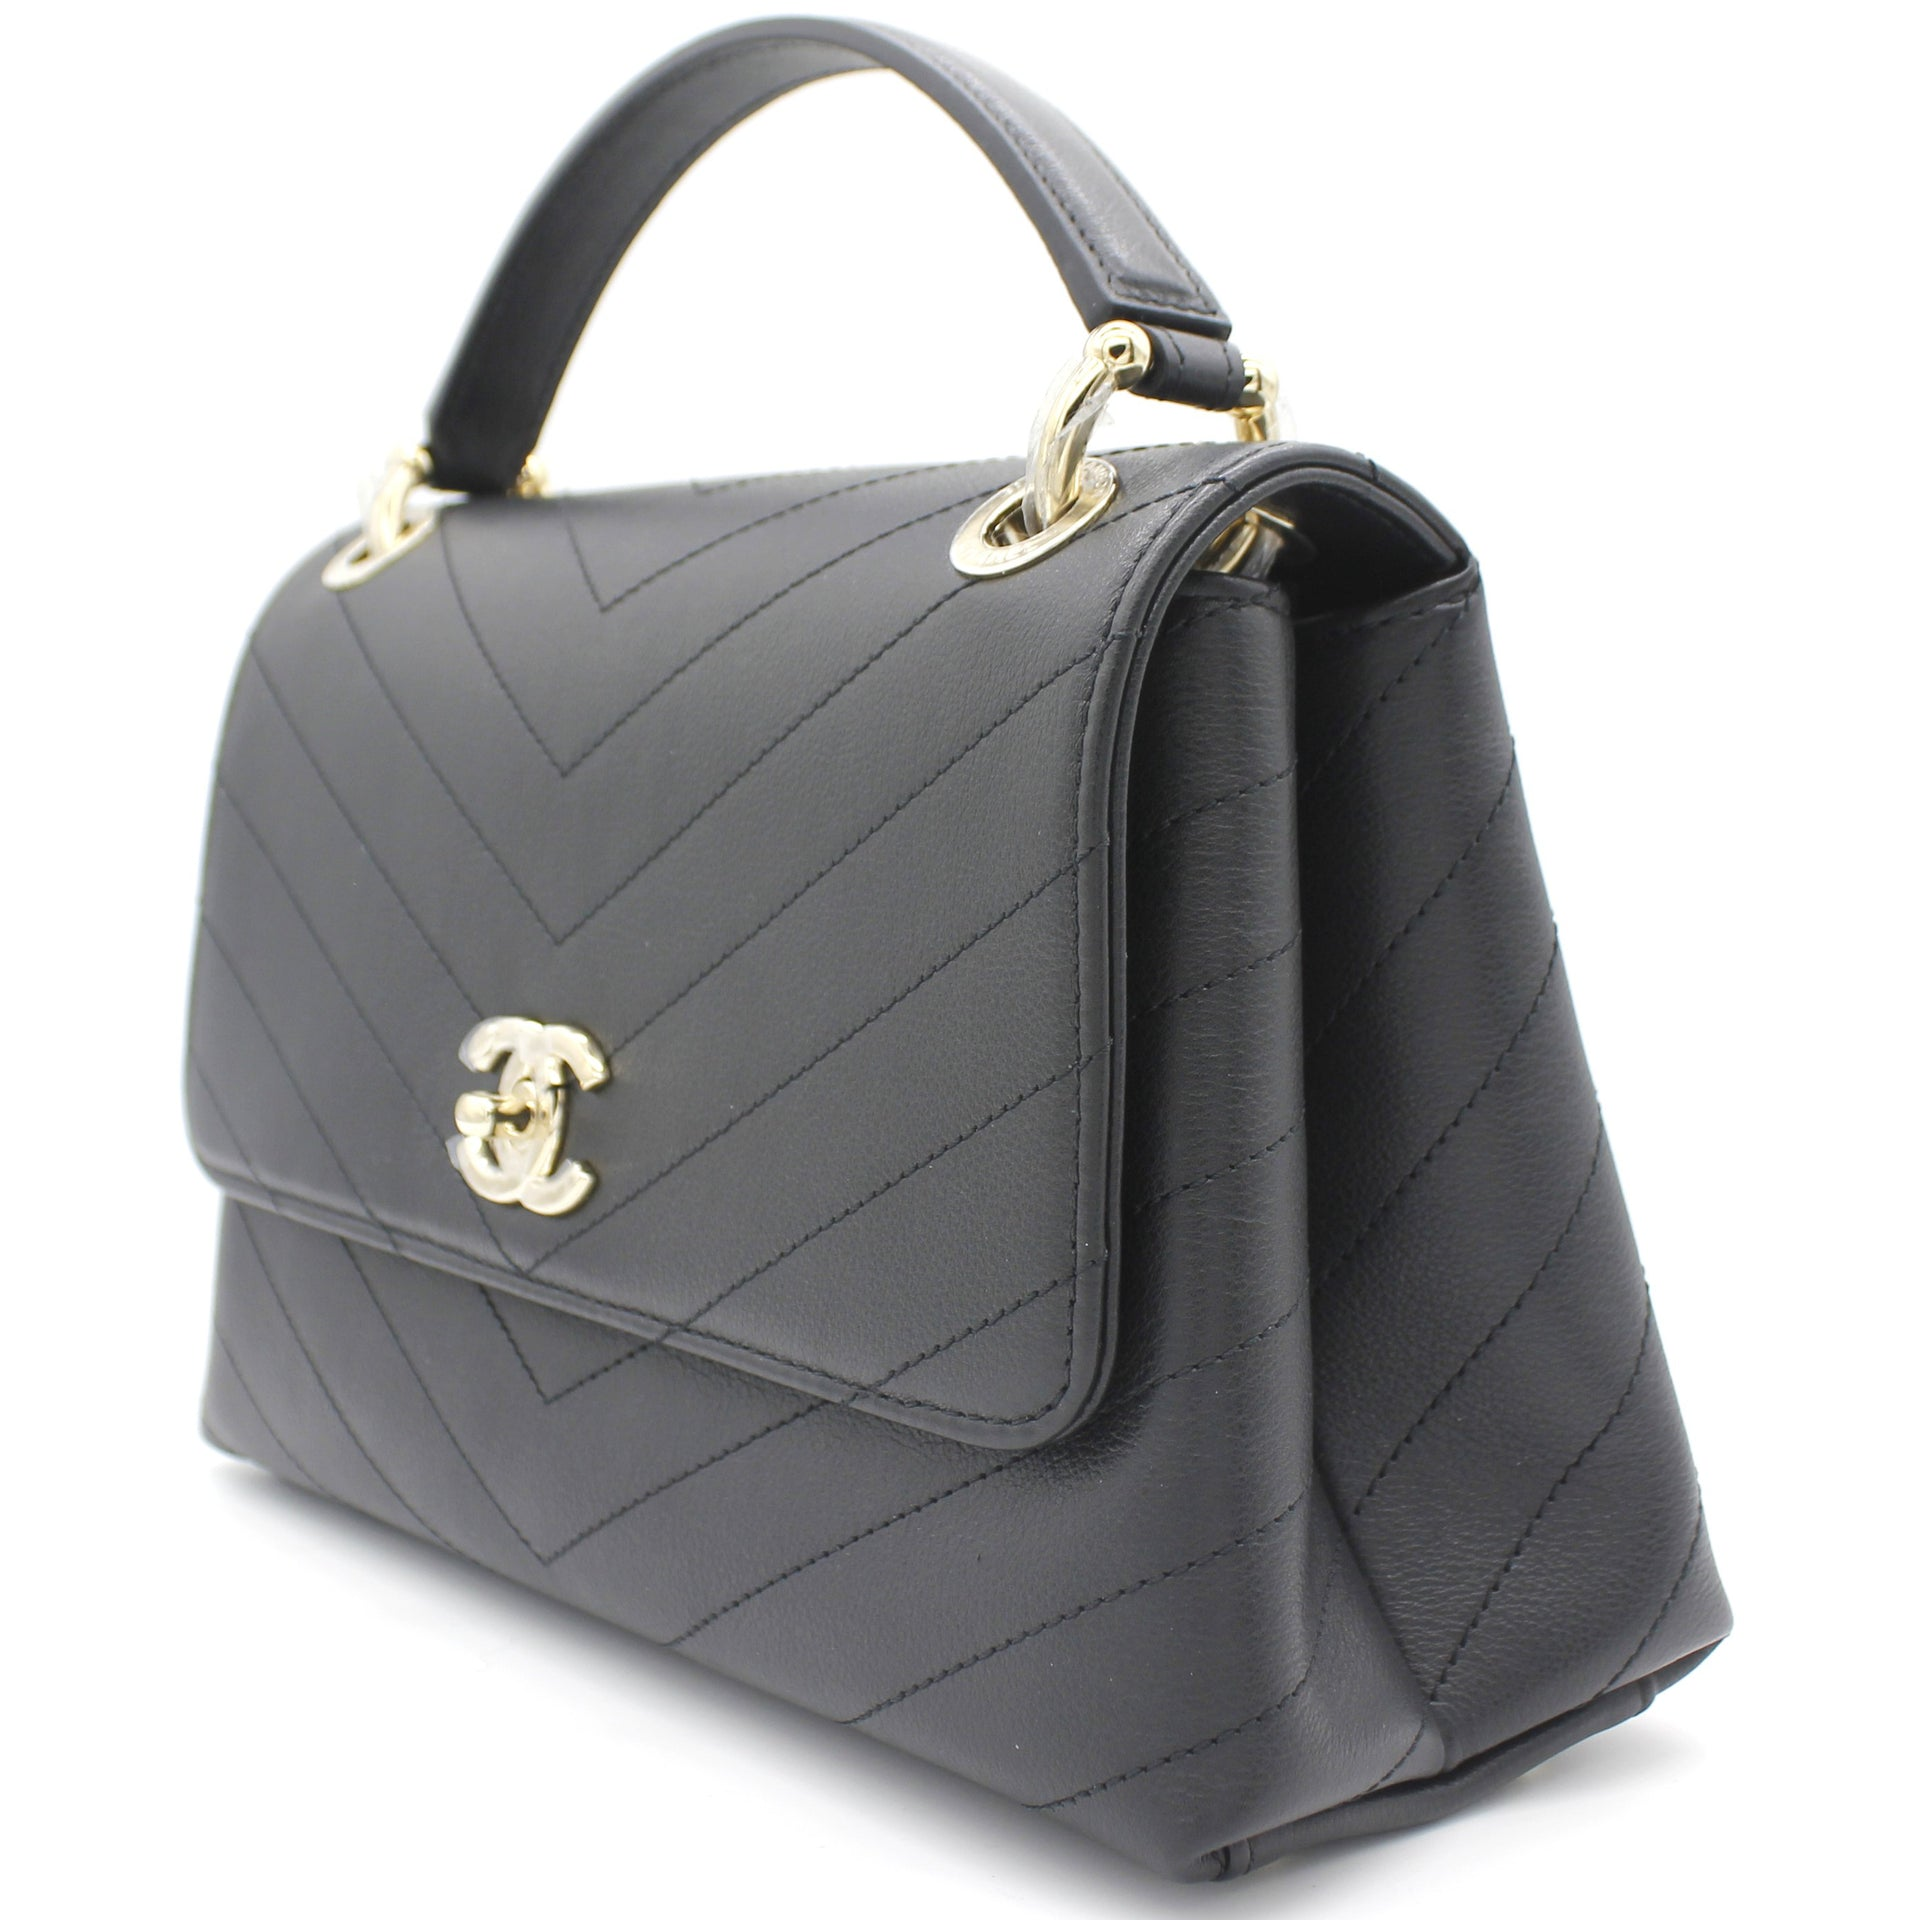 Chevron Calfskin Flap Top Handle Bag